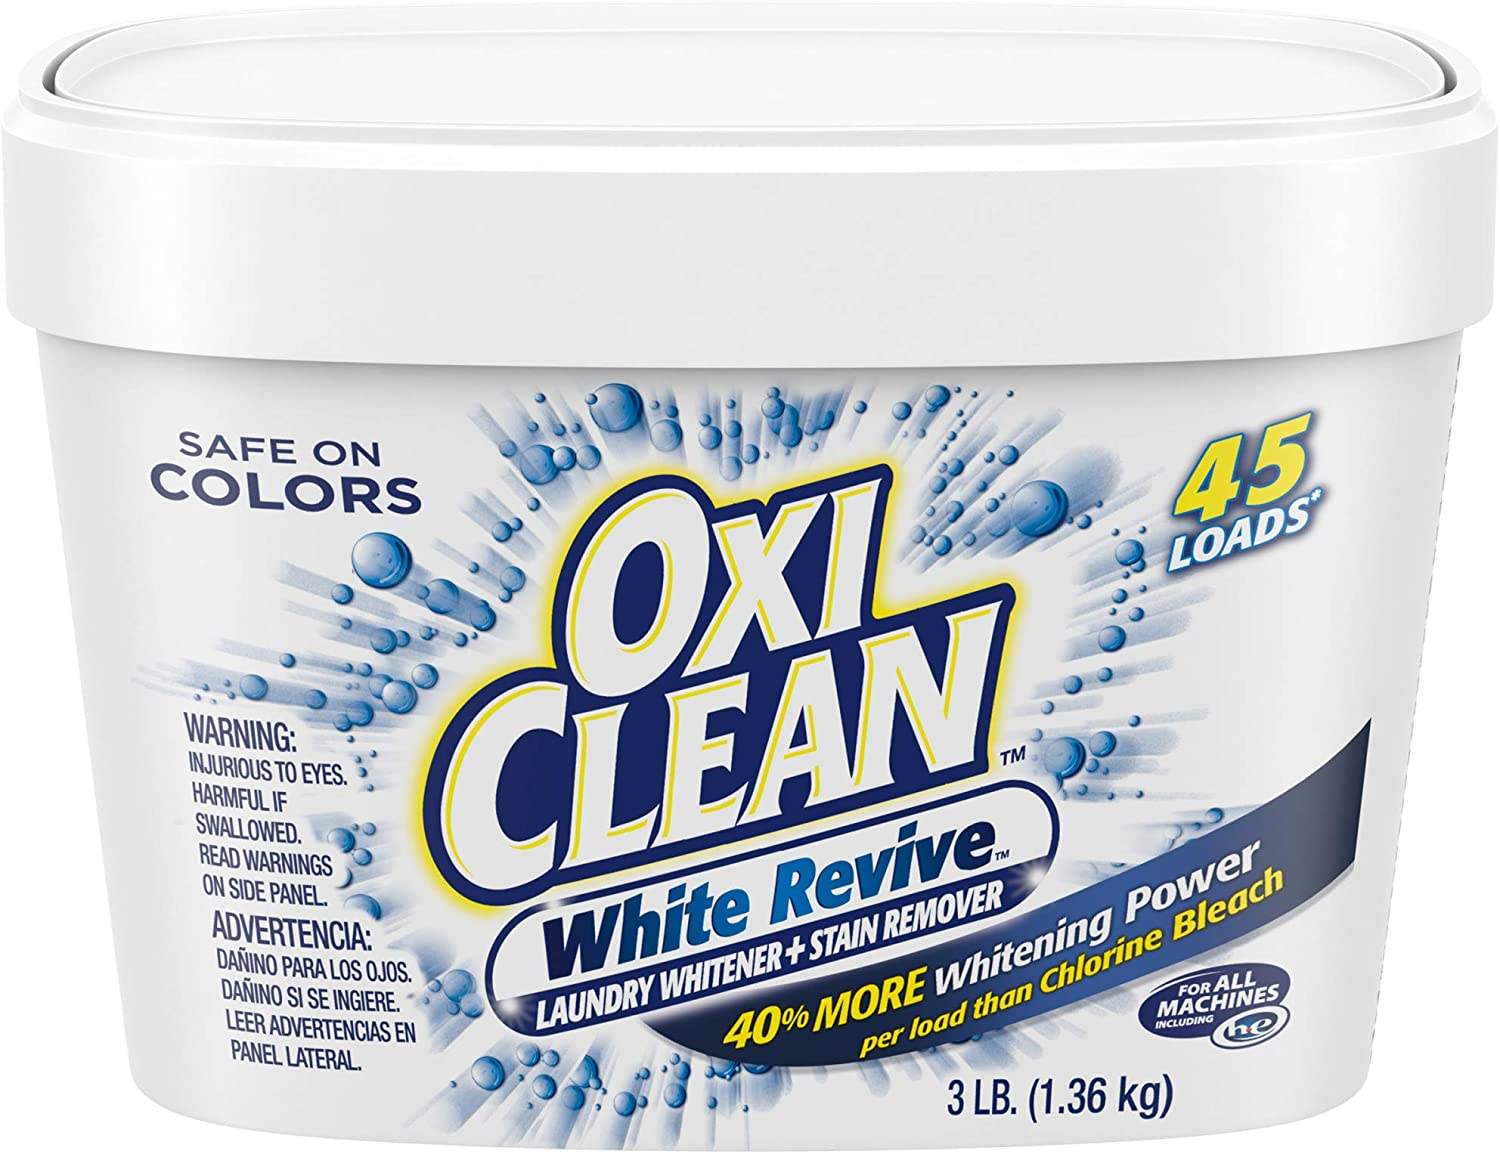 OxiClean White Revive Laundry Whitener + Stain Remover, 3 Pound